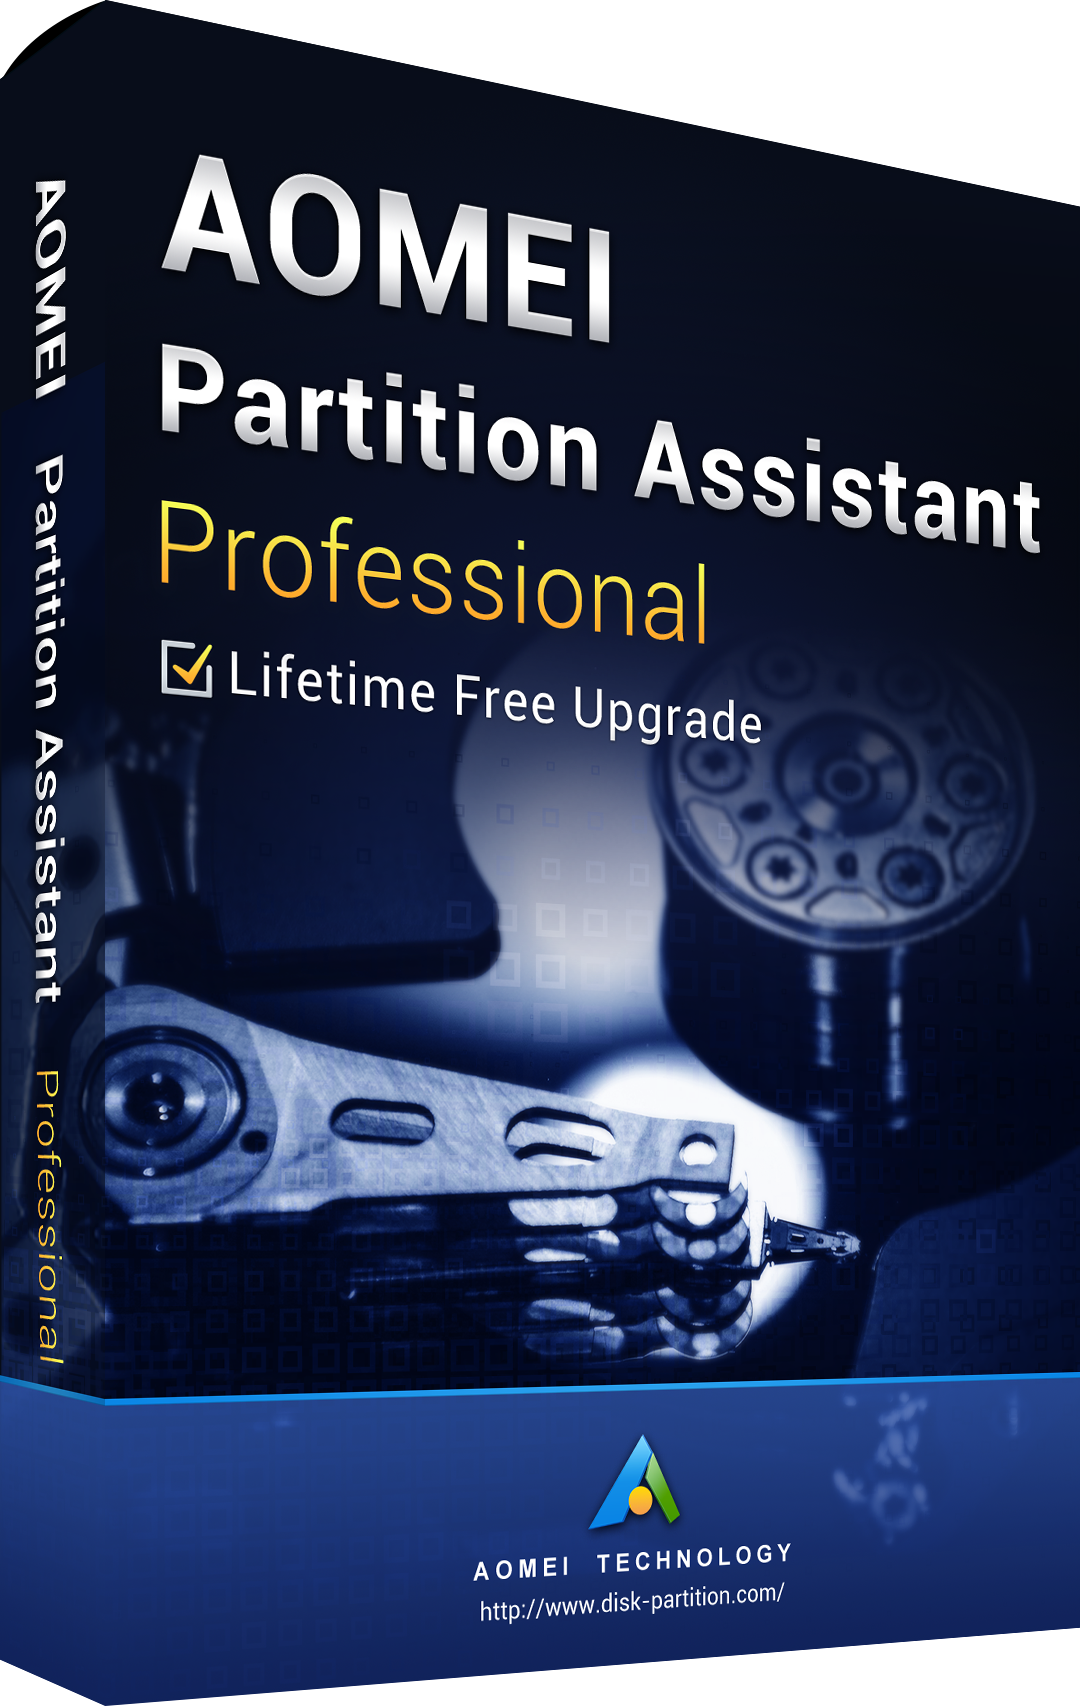 aomei partition assistant 7.5.1 keygen